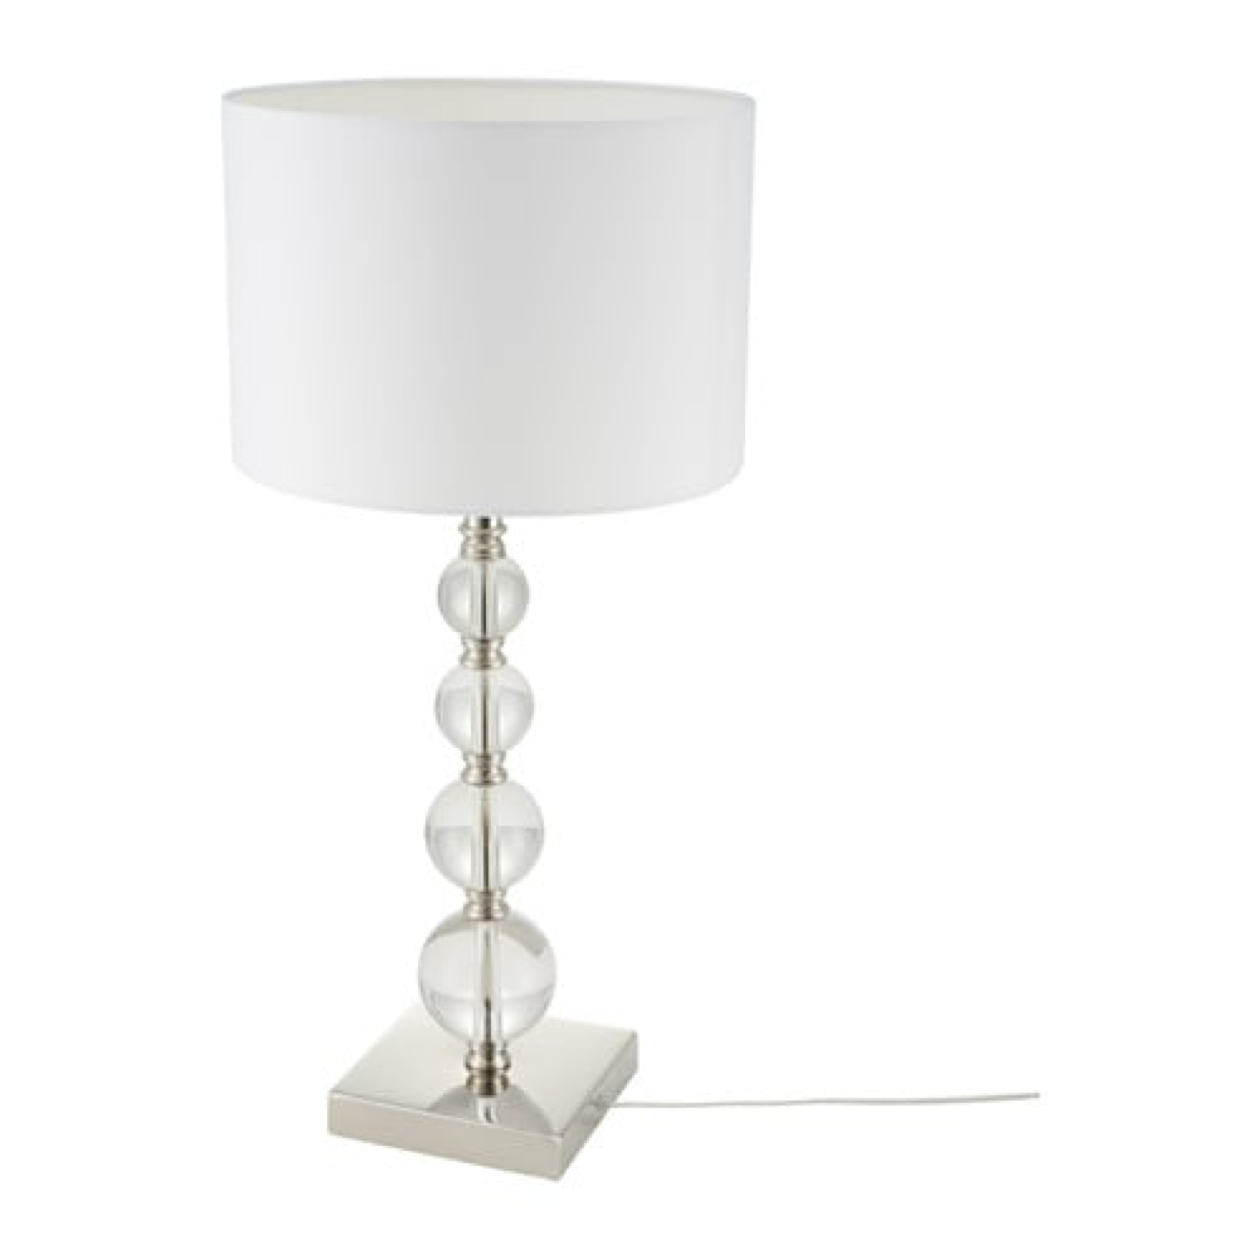 "IKEA Roxmo Table Lamp, 28"", White, 702.518.20 - NEW"